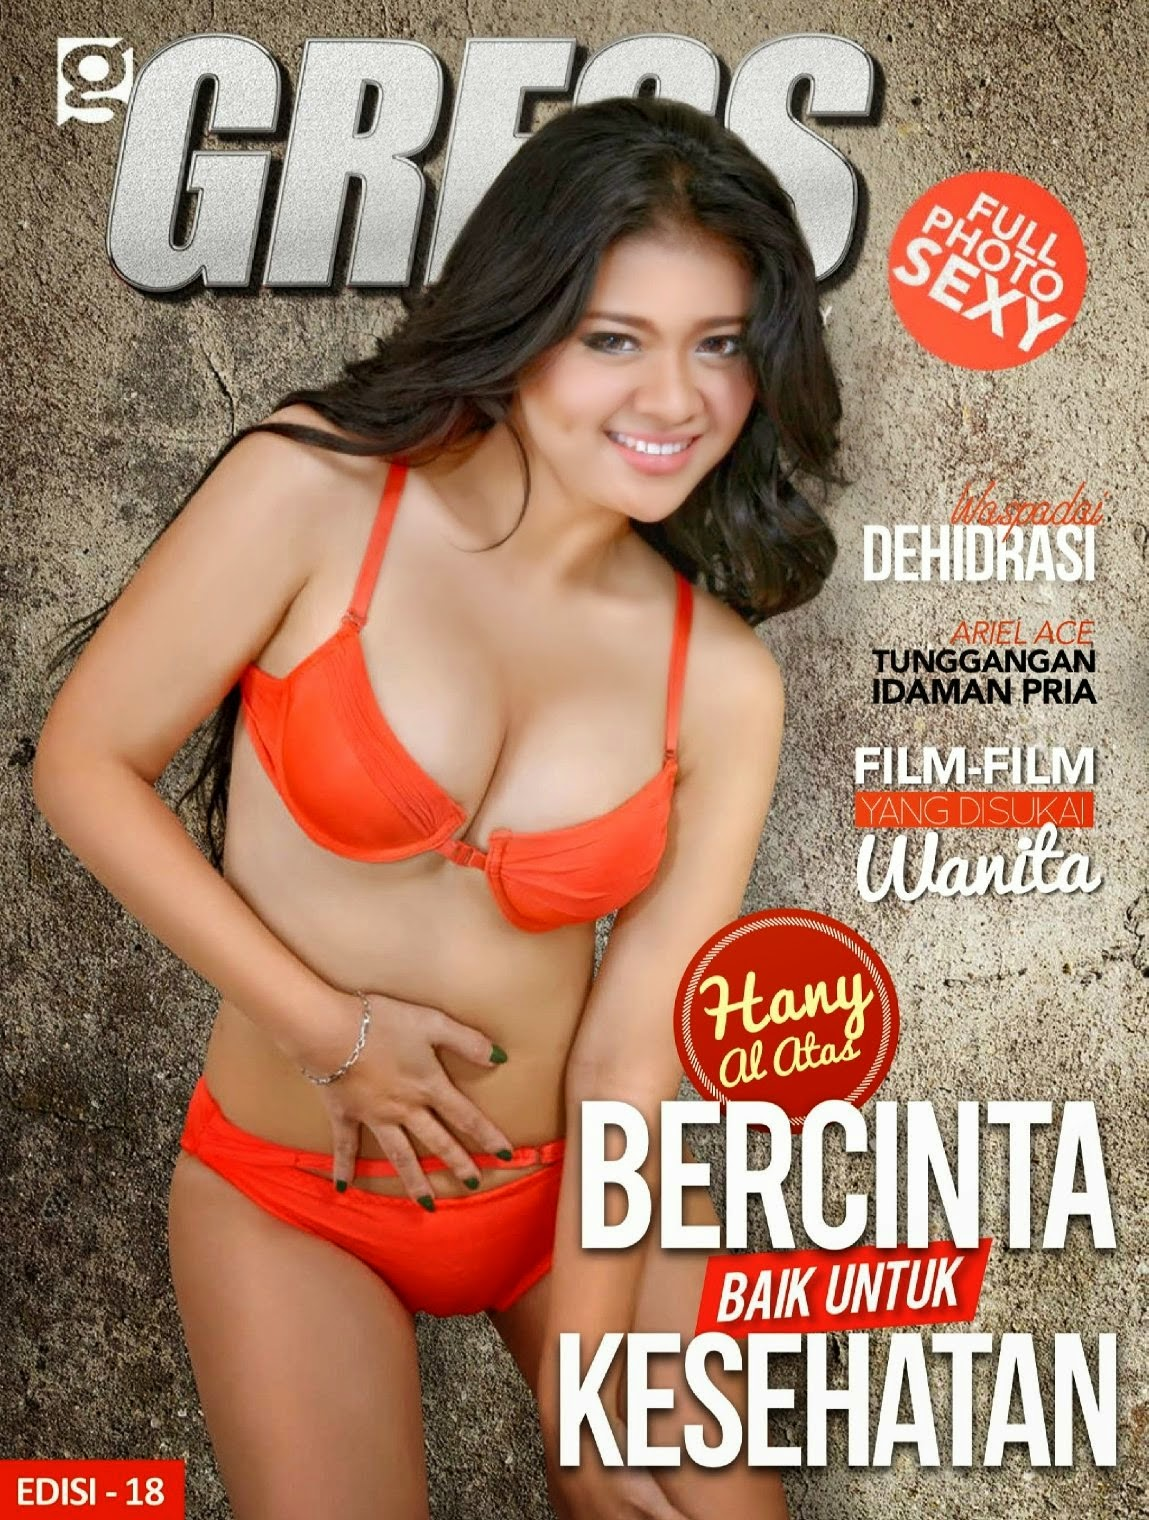 Hot Photo Hany Al Attas di Majalah Gress